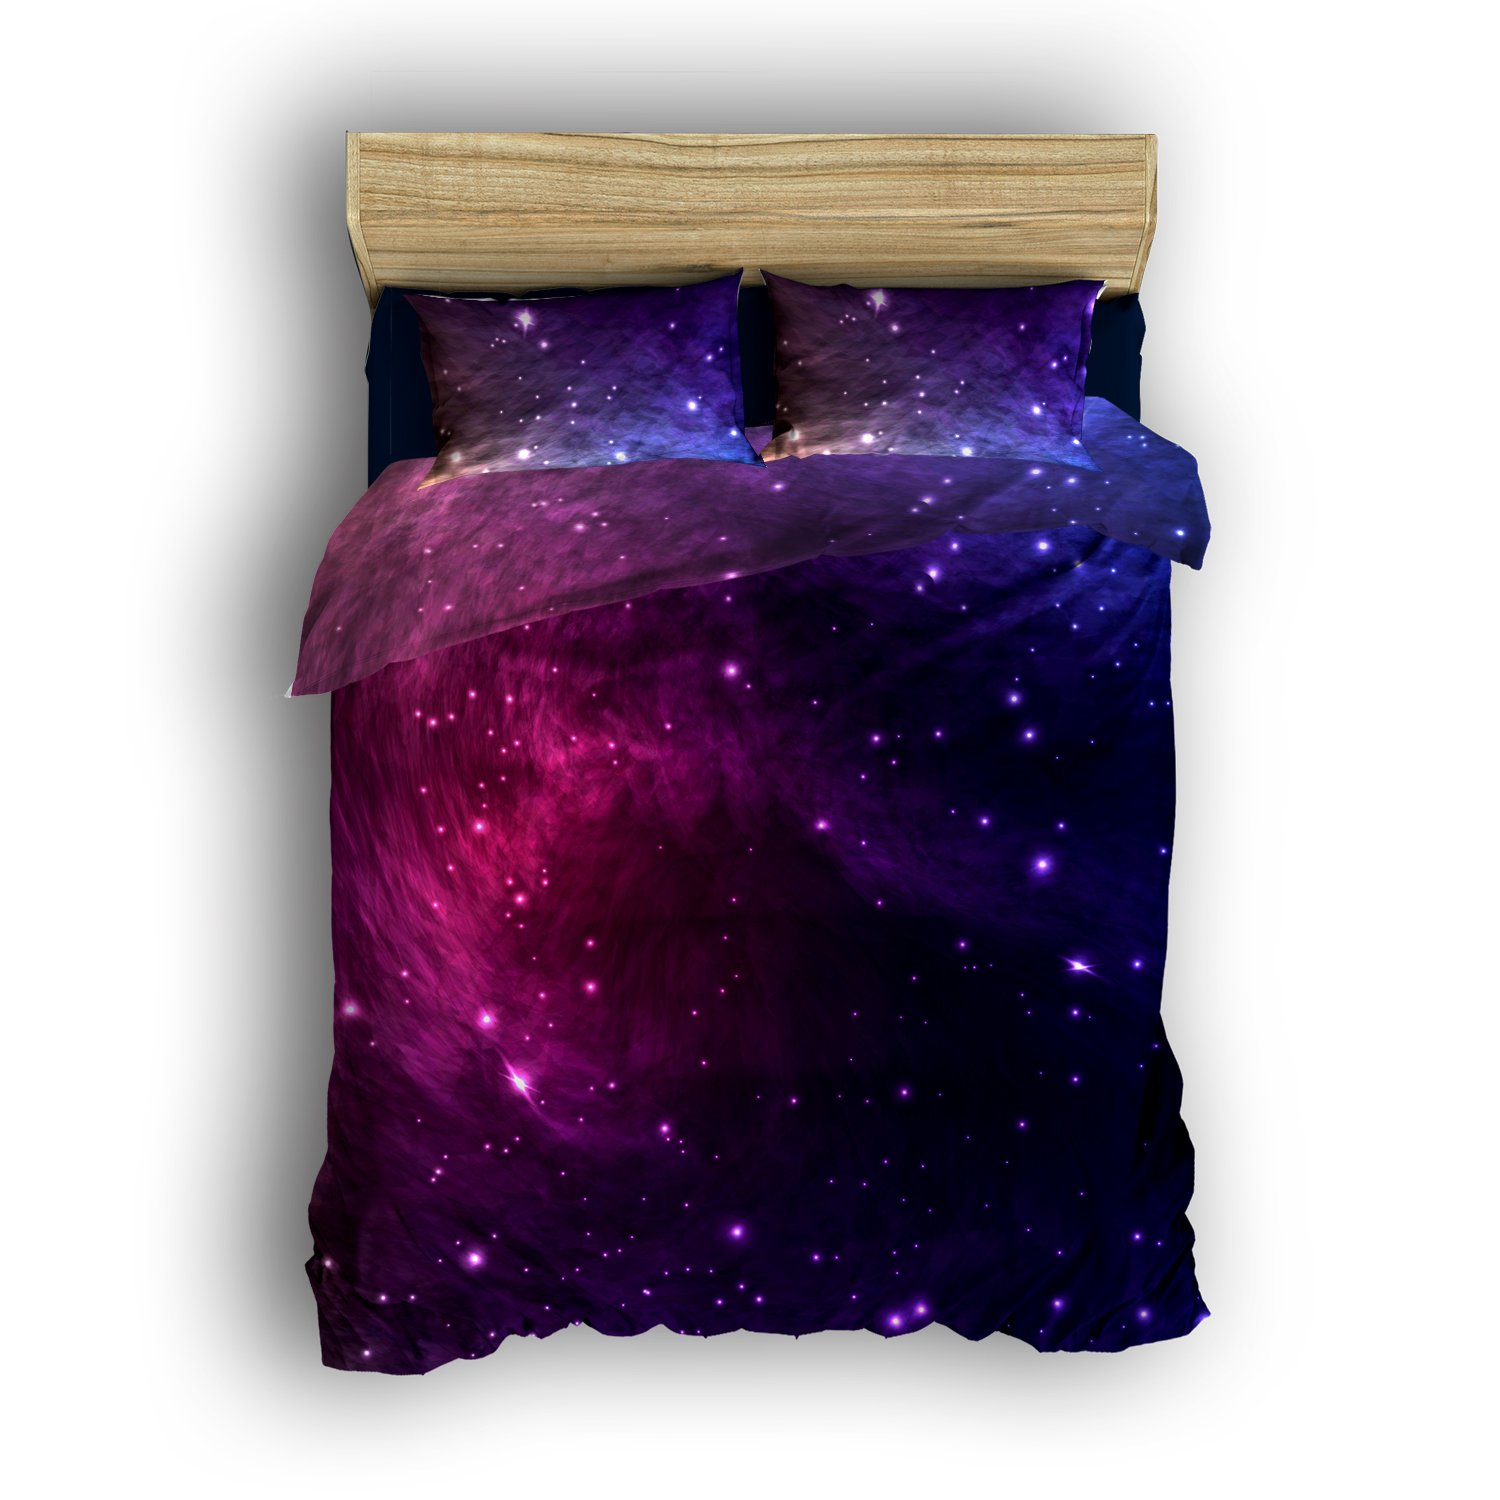 Libaoge 4 Piece Bed Sheets Set, Galaxy Stars in Space Celestial Astronomic Planets in The Universe Milky Way Print, 1 Flat Sheet 1 Duvet Cover and 2 Pillow Cases